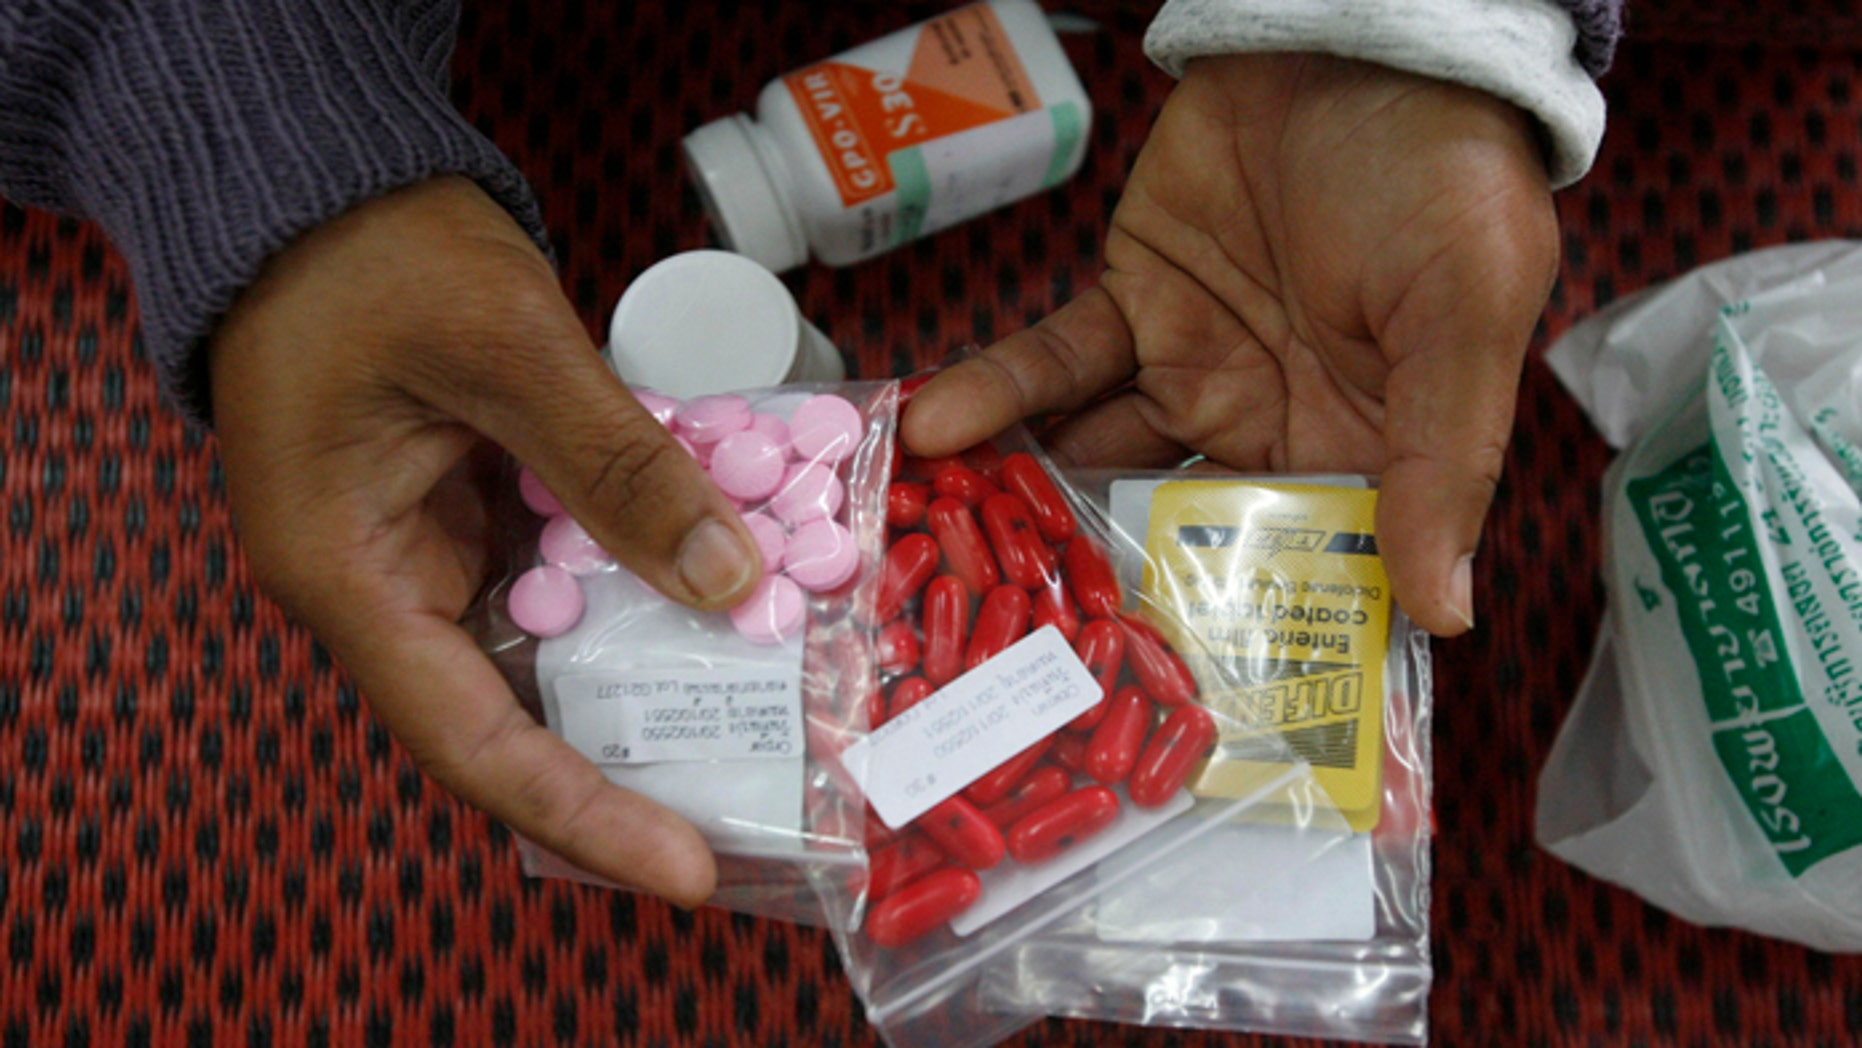 An HIV-infected patient displays medicine at a hospital in Payao province, about 373 miles north of Bangkok.